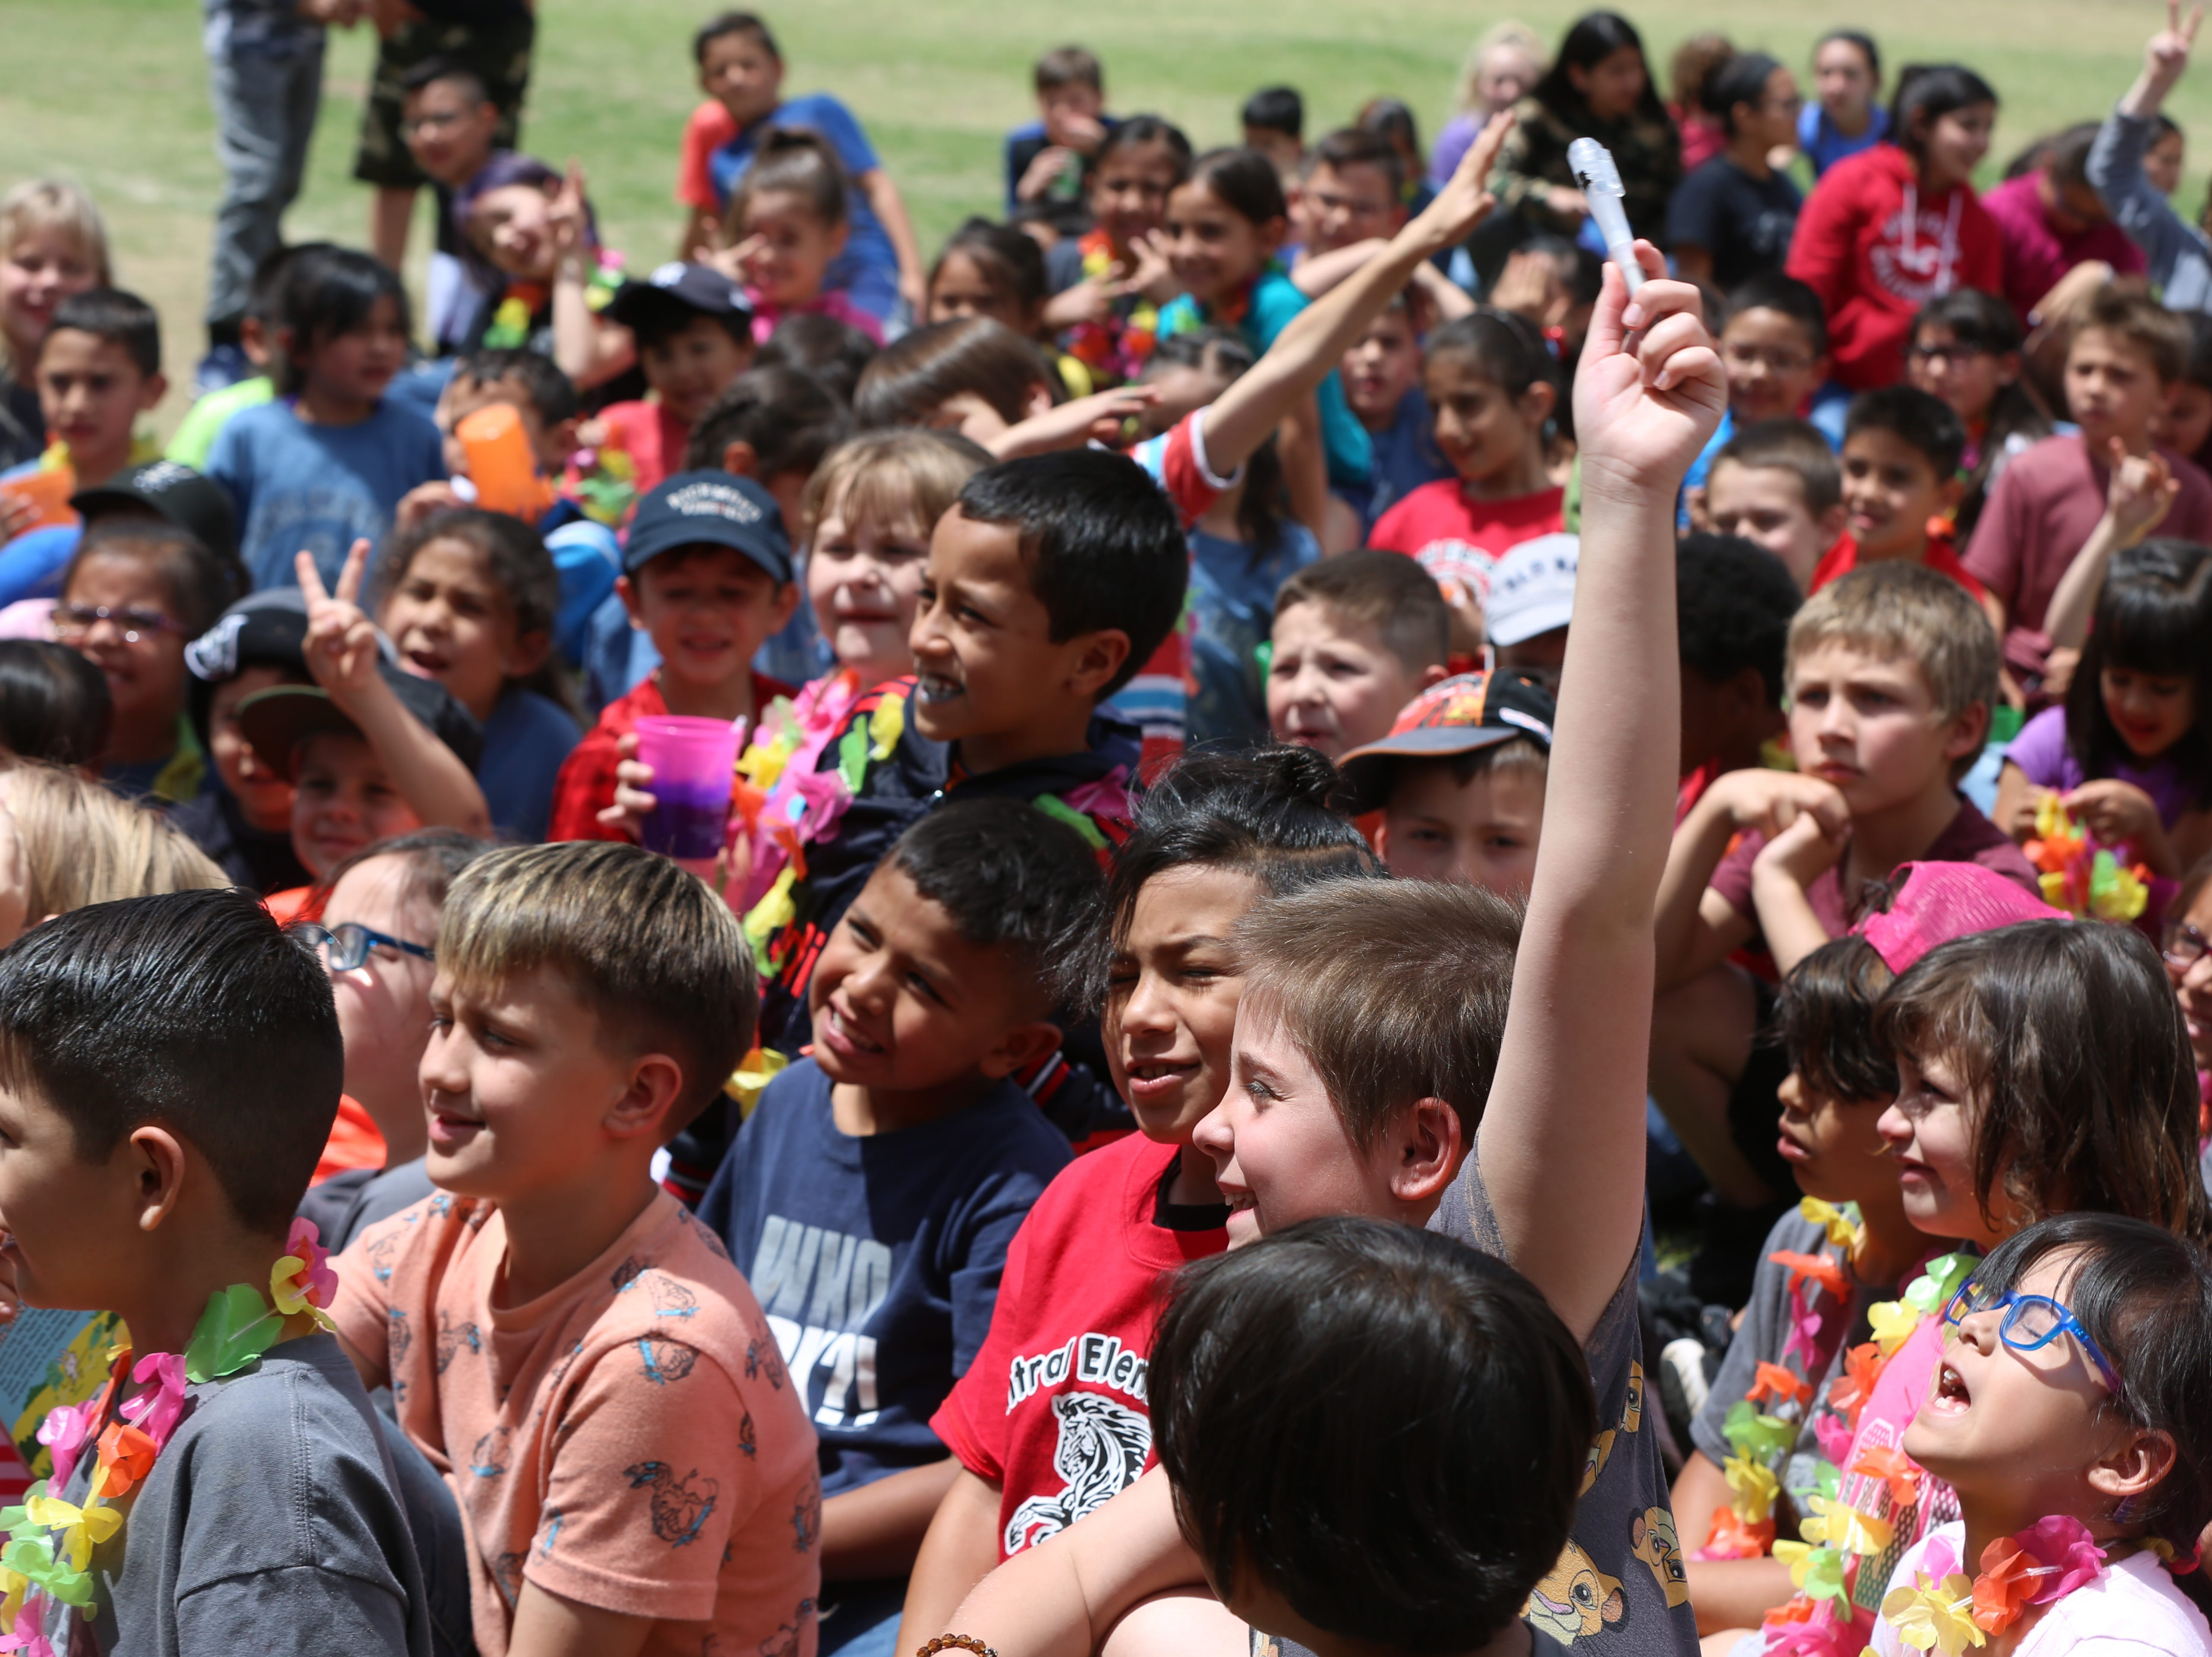 Students at Central Elementary School celebrate the school's 70th anniversary Wednesday, April 24.